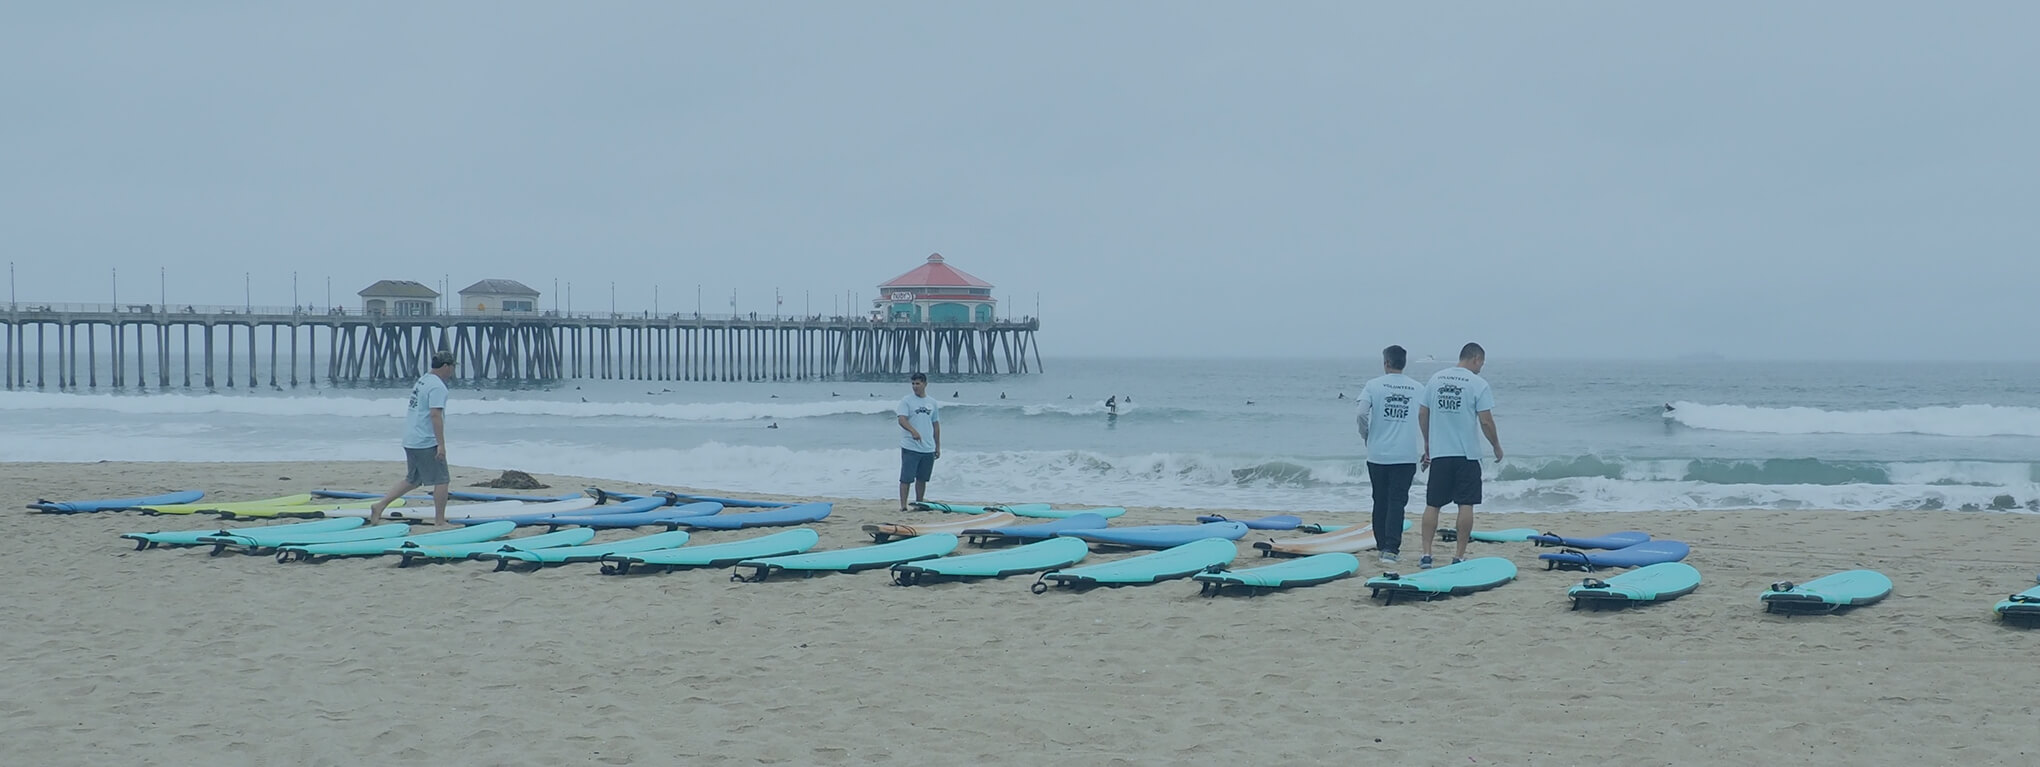 Volunteers line up surfboards at Huntington Beach